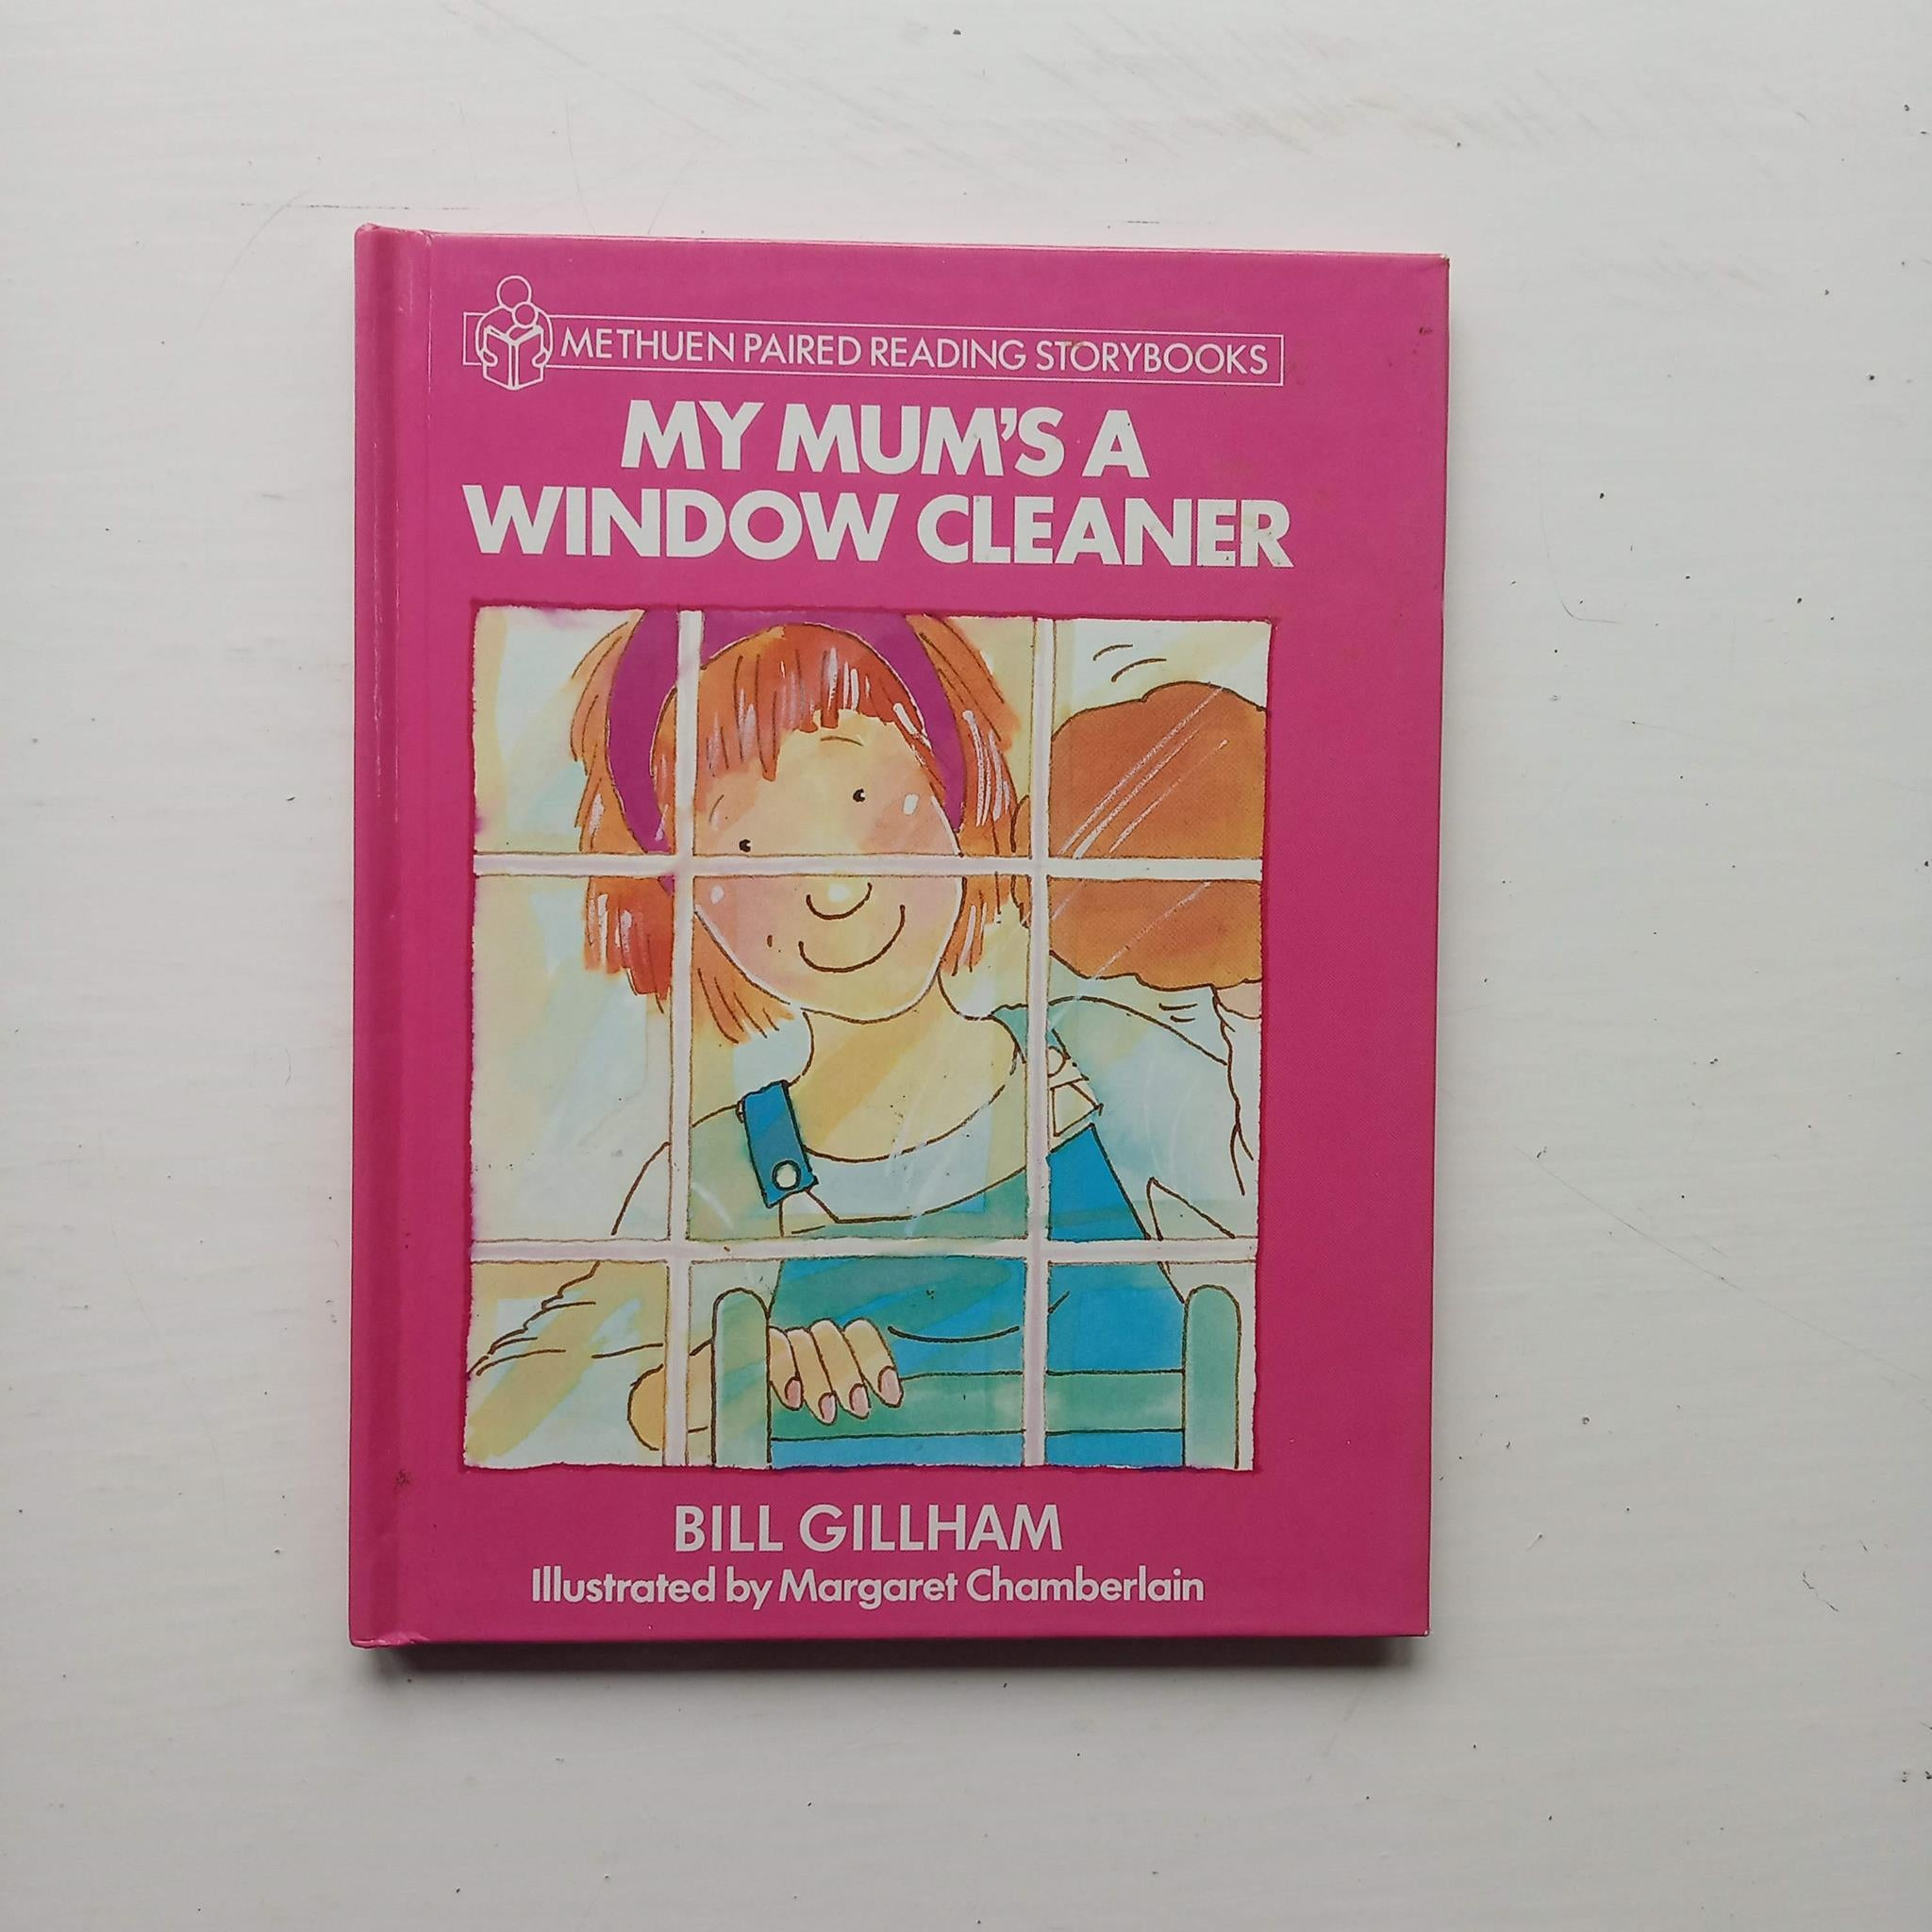 My Mum's A Window Cleaner by Bill Gillham